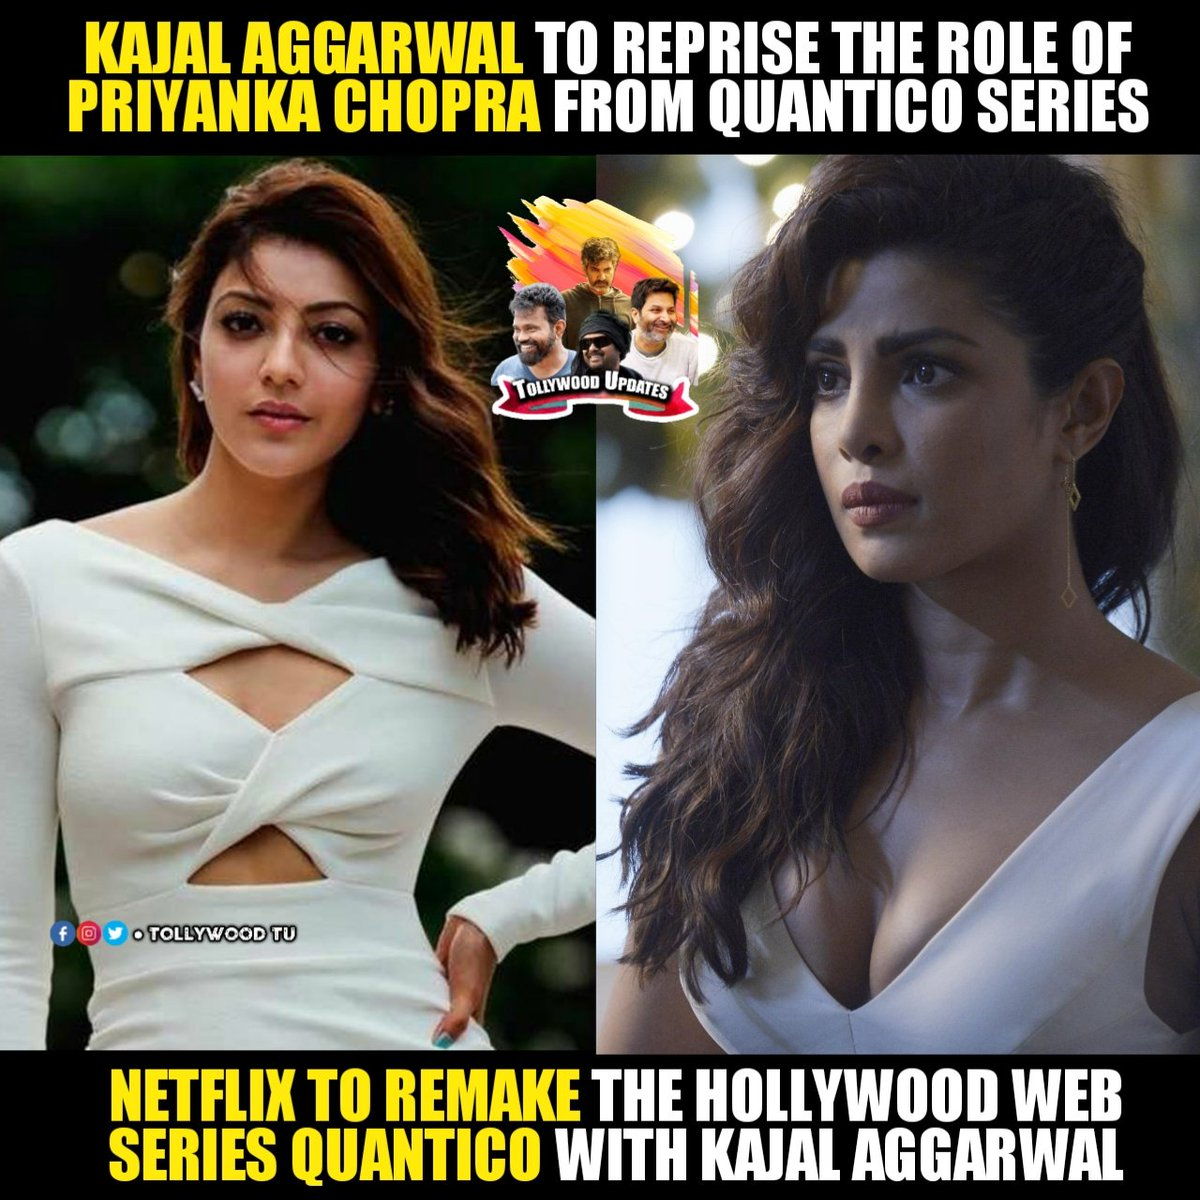 Tollywood Updates On Twitter Kajalaggarwal To Debut Into Webseries With The Remake Of Quantico Netflix To Produce And Release It On Their Own Ott Platform Https T Co Txzhqzlzyx